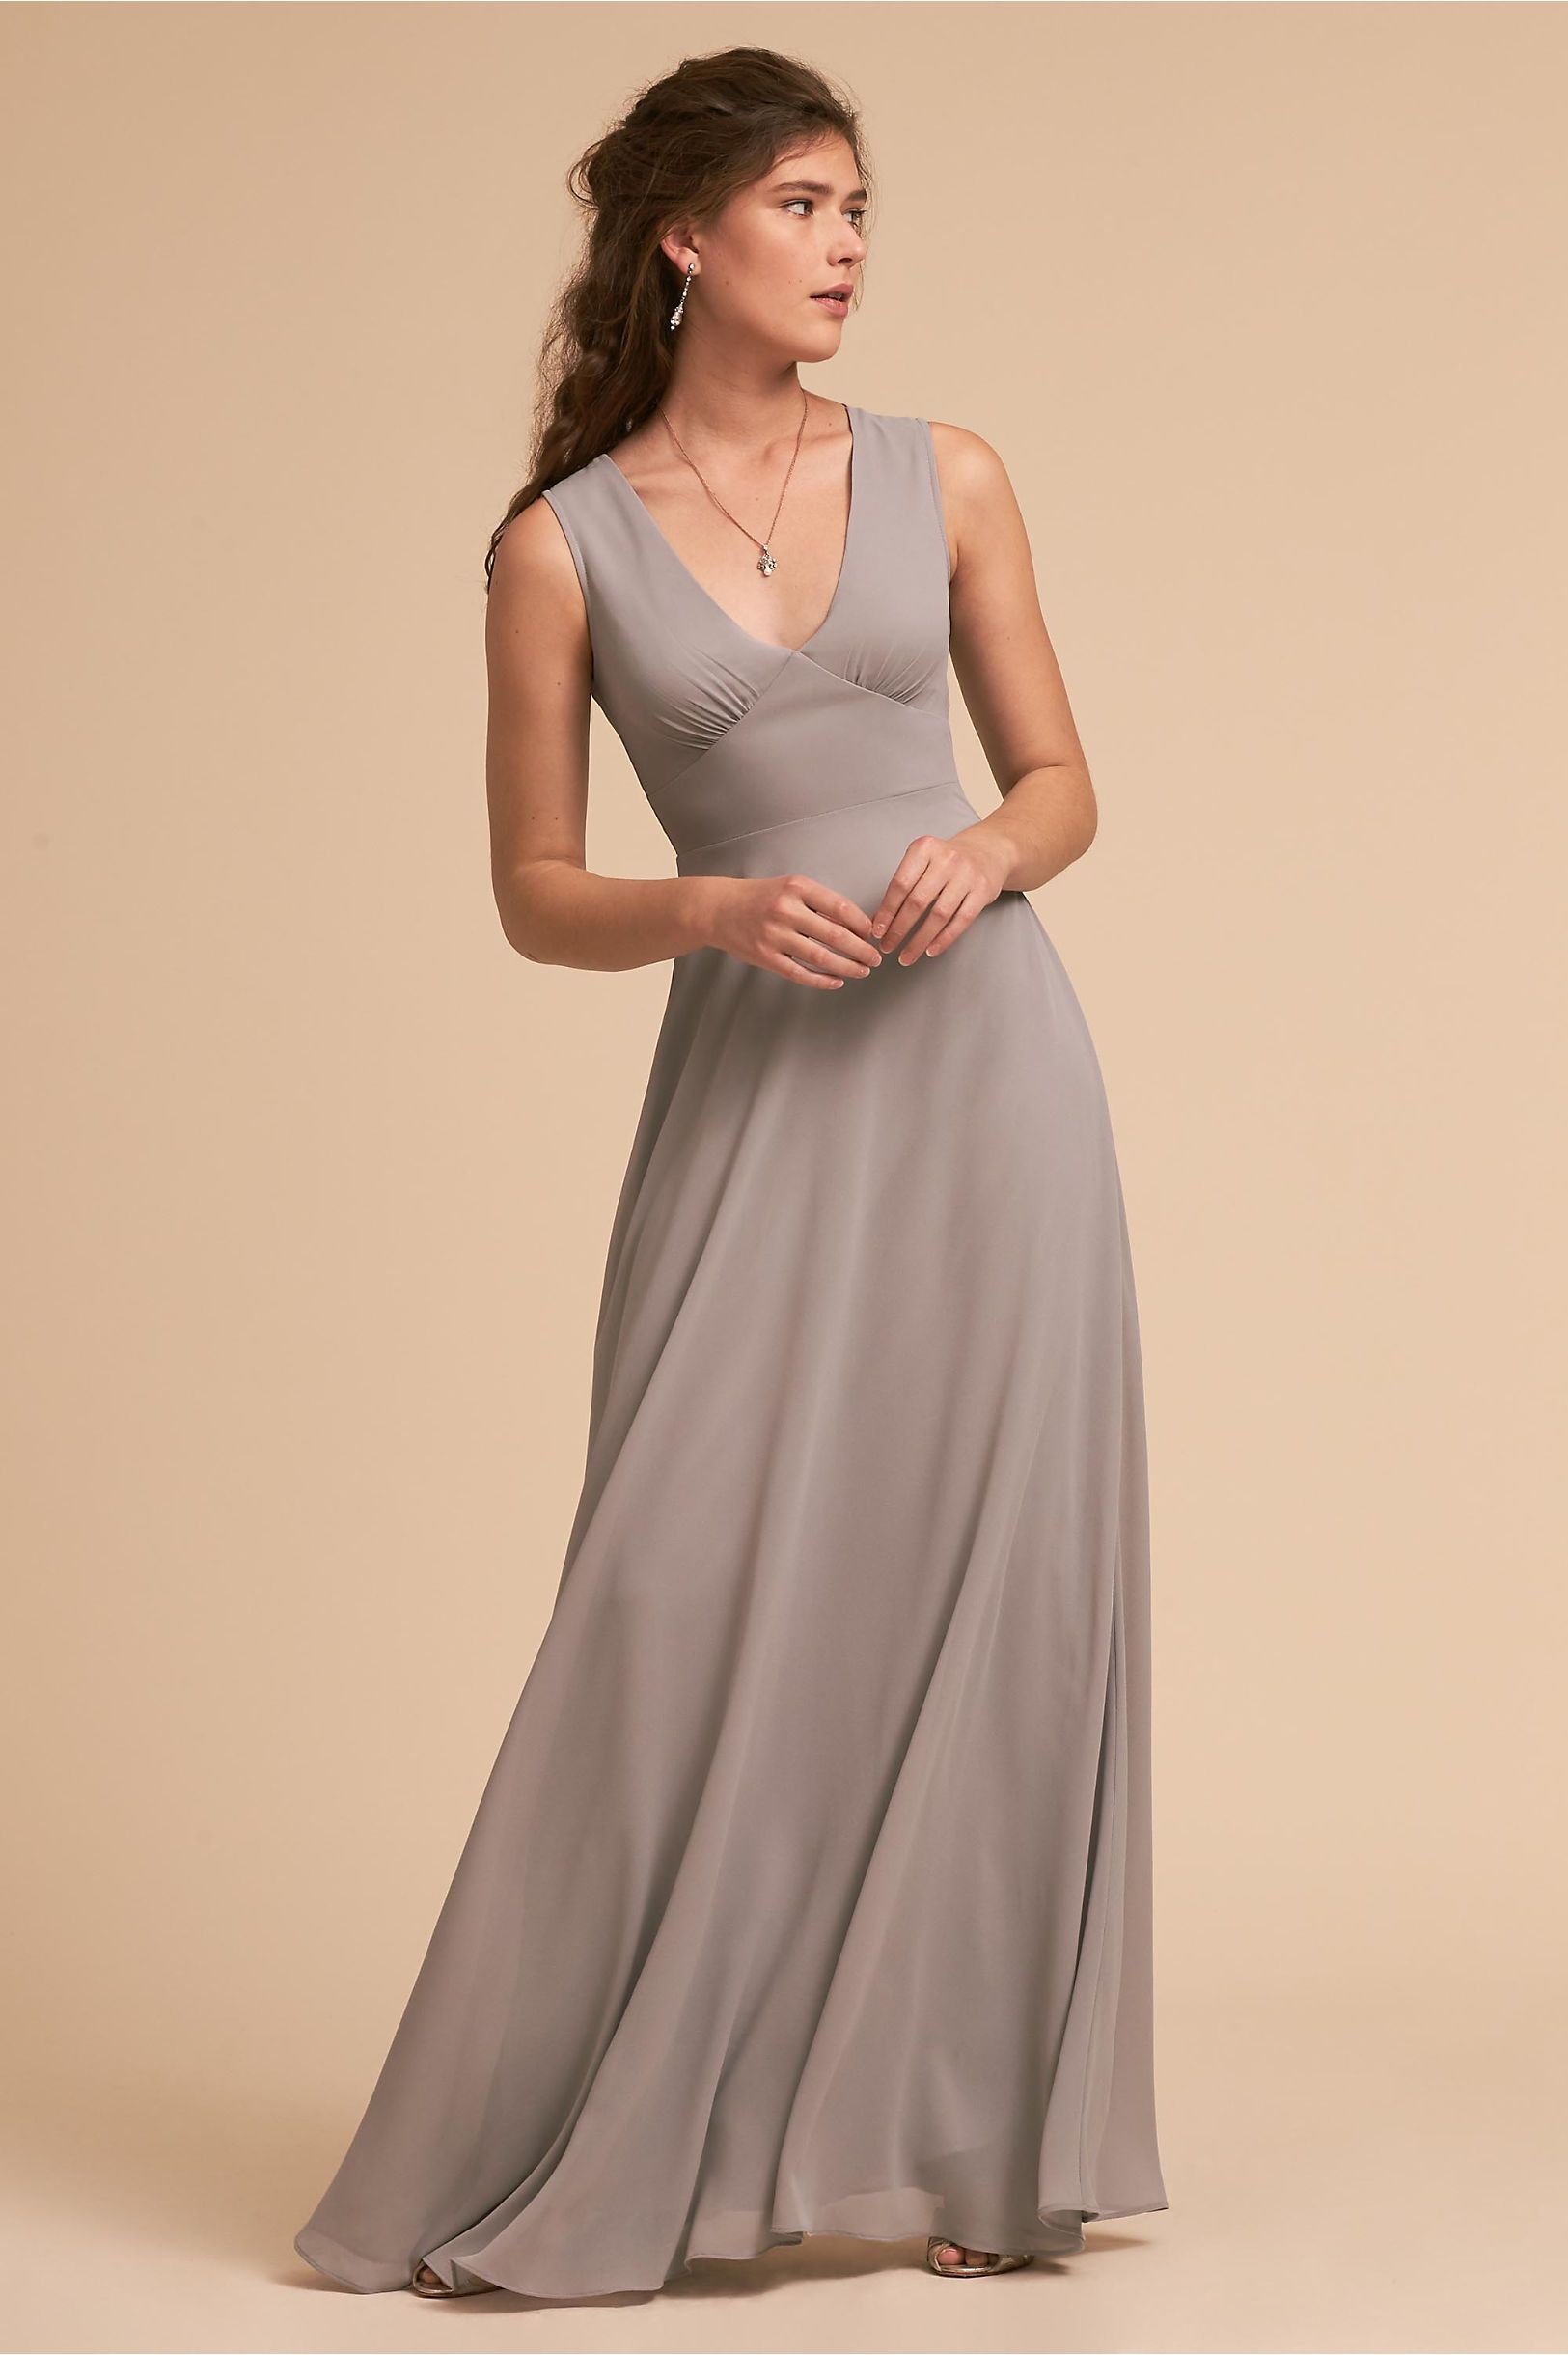 Dress for wedding party for girl  BHLDN Capulet Dress Grey in Bridal Party  BHLDN  THE BRIDESMAIDS